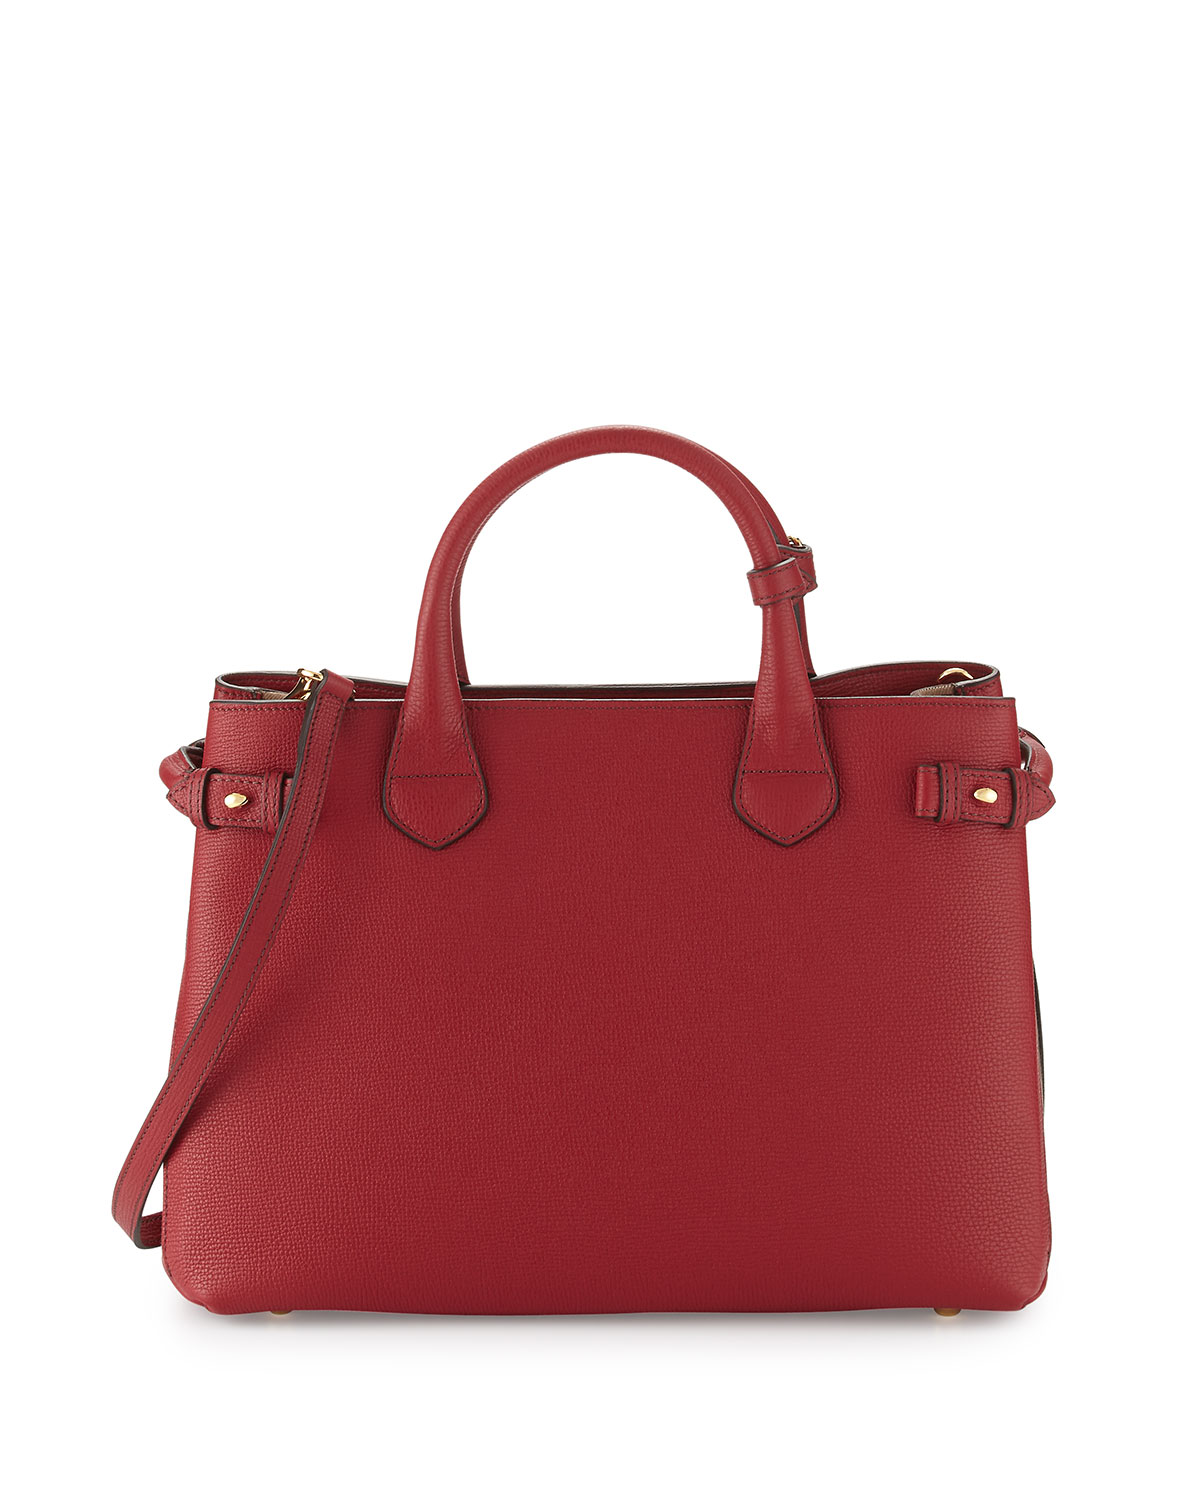 3d093641d Burberry Banner Medium House Check & Derby Leather Tote Bag, Russet Red